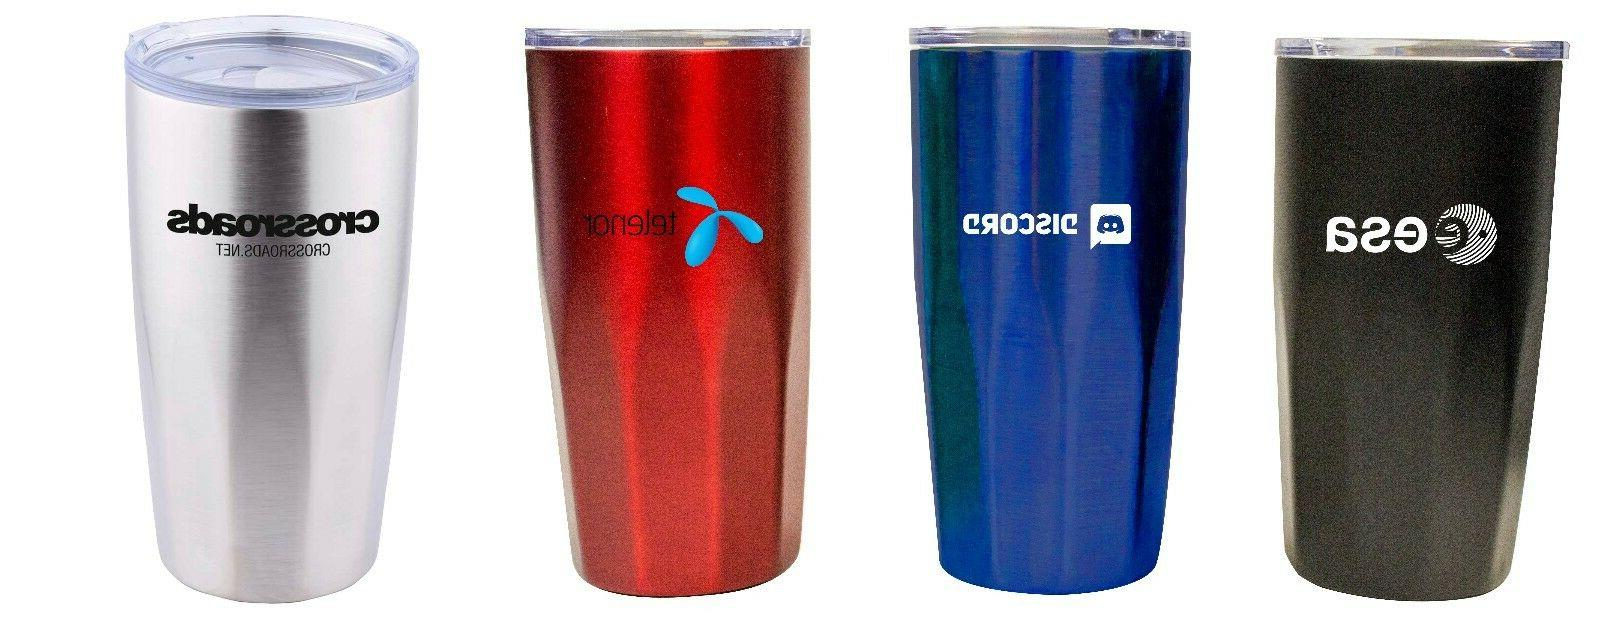 20OZ STAINLESS STEEL DOUBLE WALL TUMBLER KEEP COLD UP TO 16